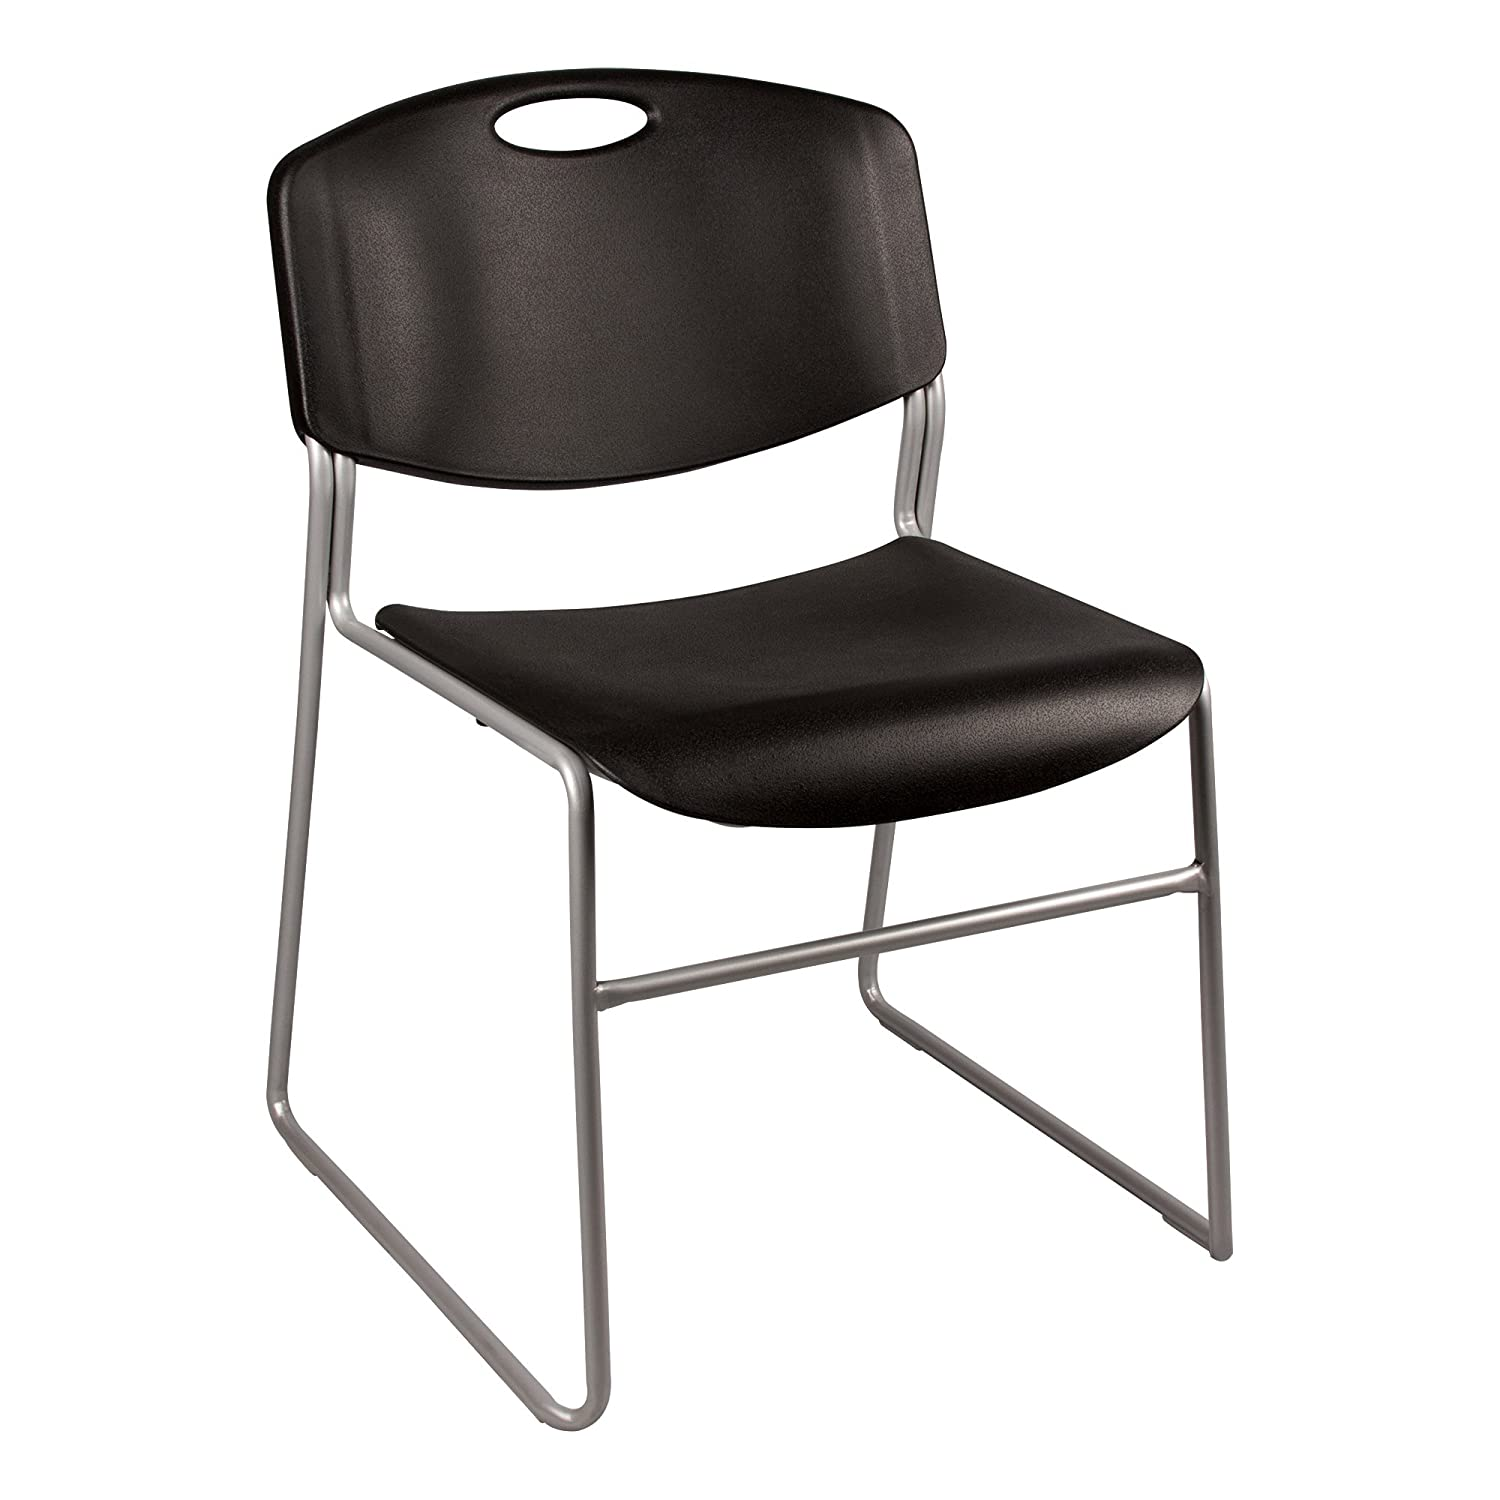 Norwood Commercial Furniture Heavy-Duty Plastic Stacking Chair, Black Seat w/ Silver Mist Frame, NOR-FEI1059BK-SO (Pack of 4)